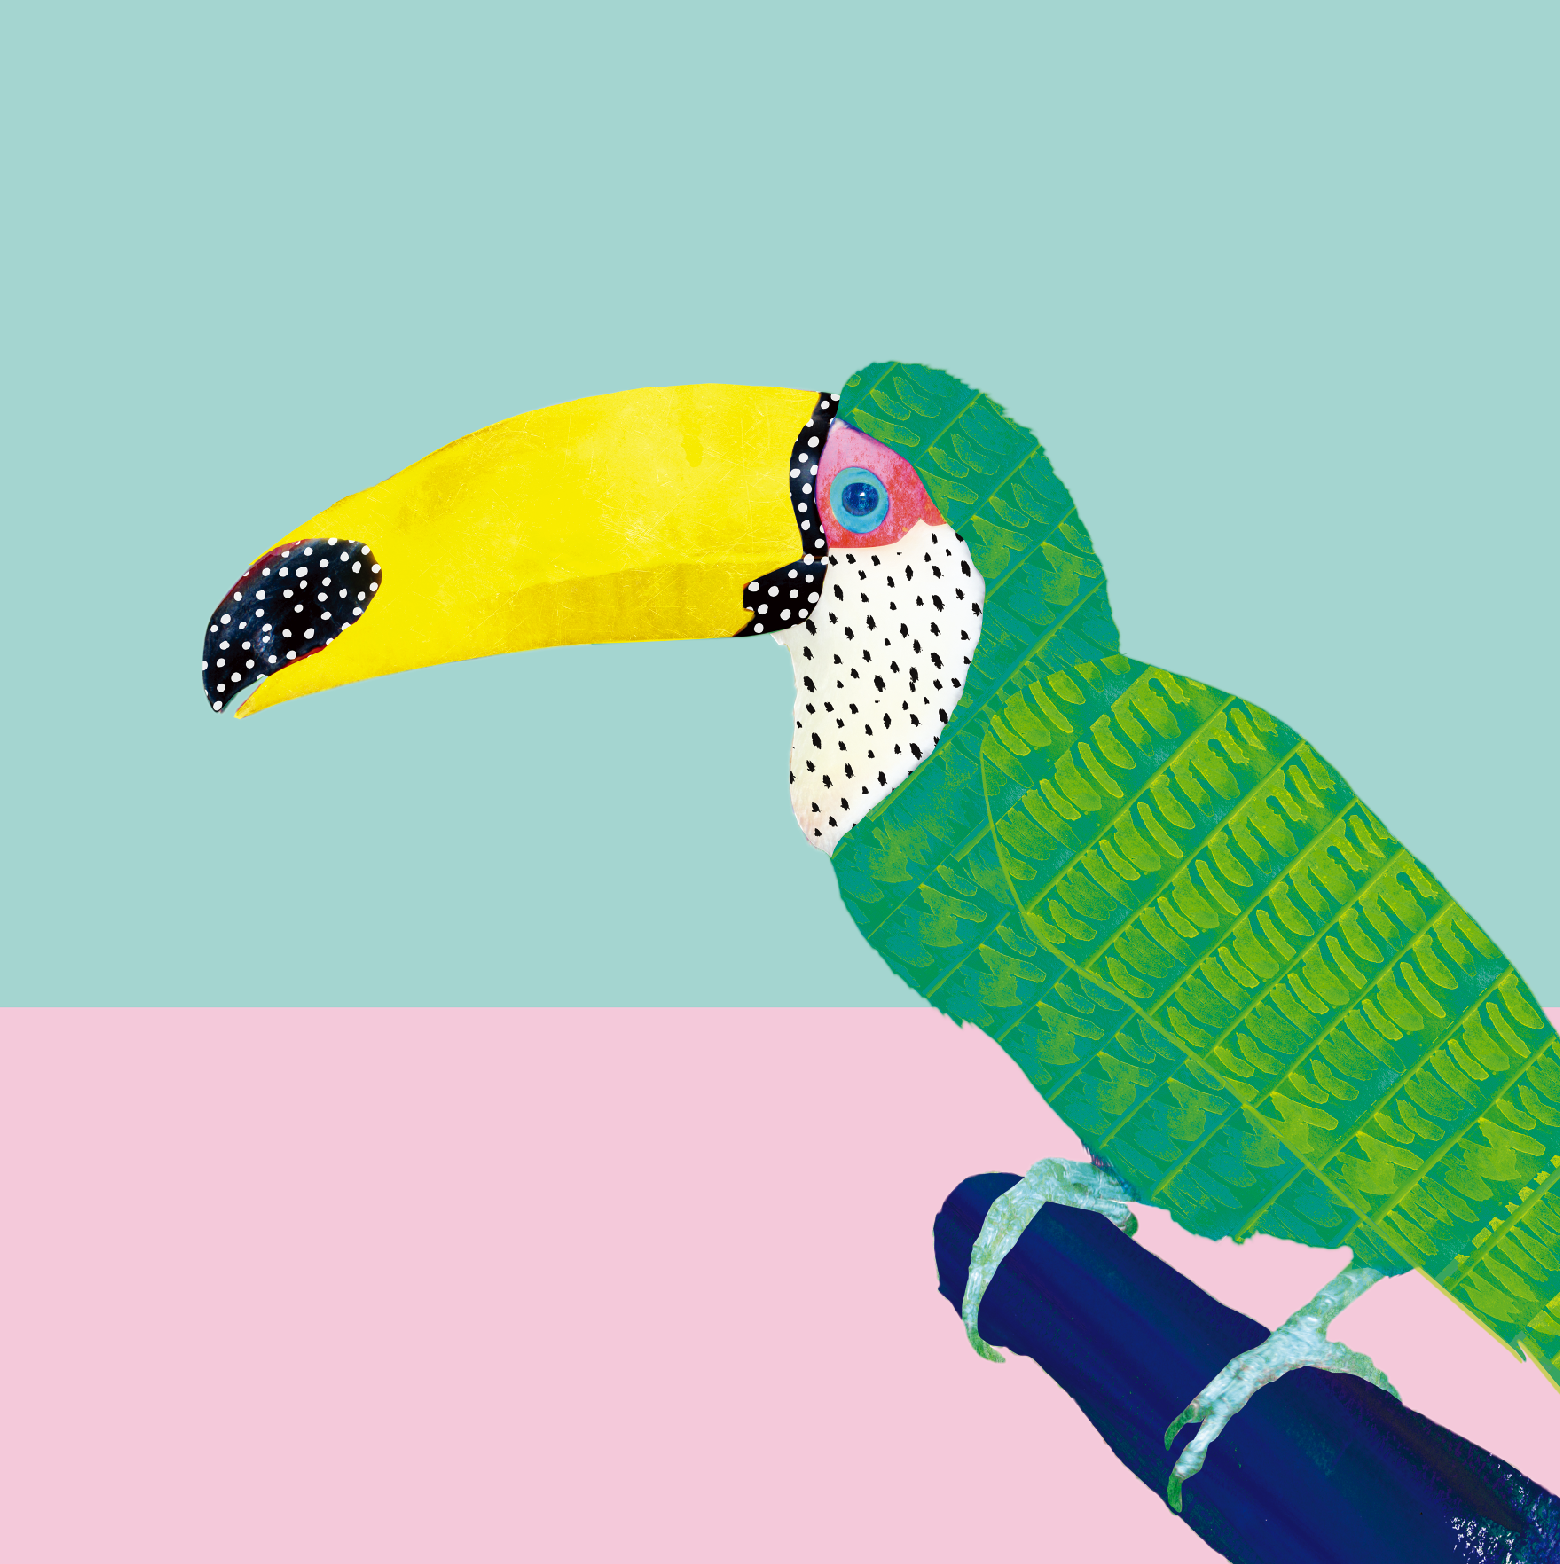 CHILLING TOUCAN    While we don't see toucans in Africa, they are irresistibly interesting birds. Rui could not help but to capture their bizarre, bold features, using their large beaks and beautiful plumage as a canvas to experiment with interesting surface textures. Charming and sweet, this print will no doubt put you in a cheerful mood!